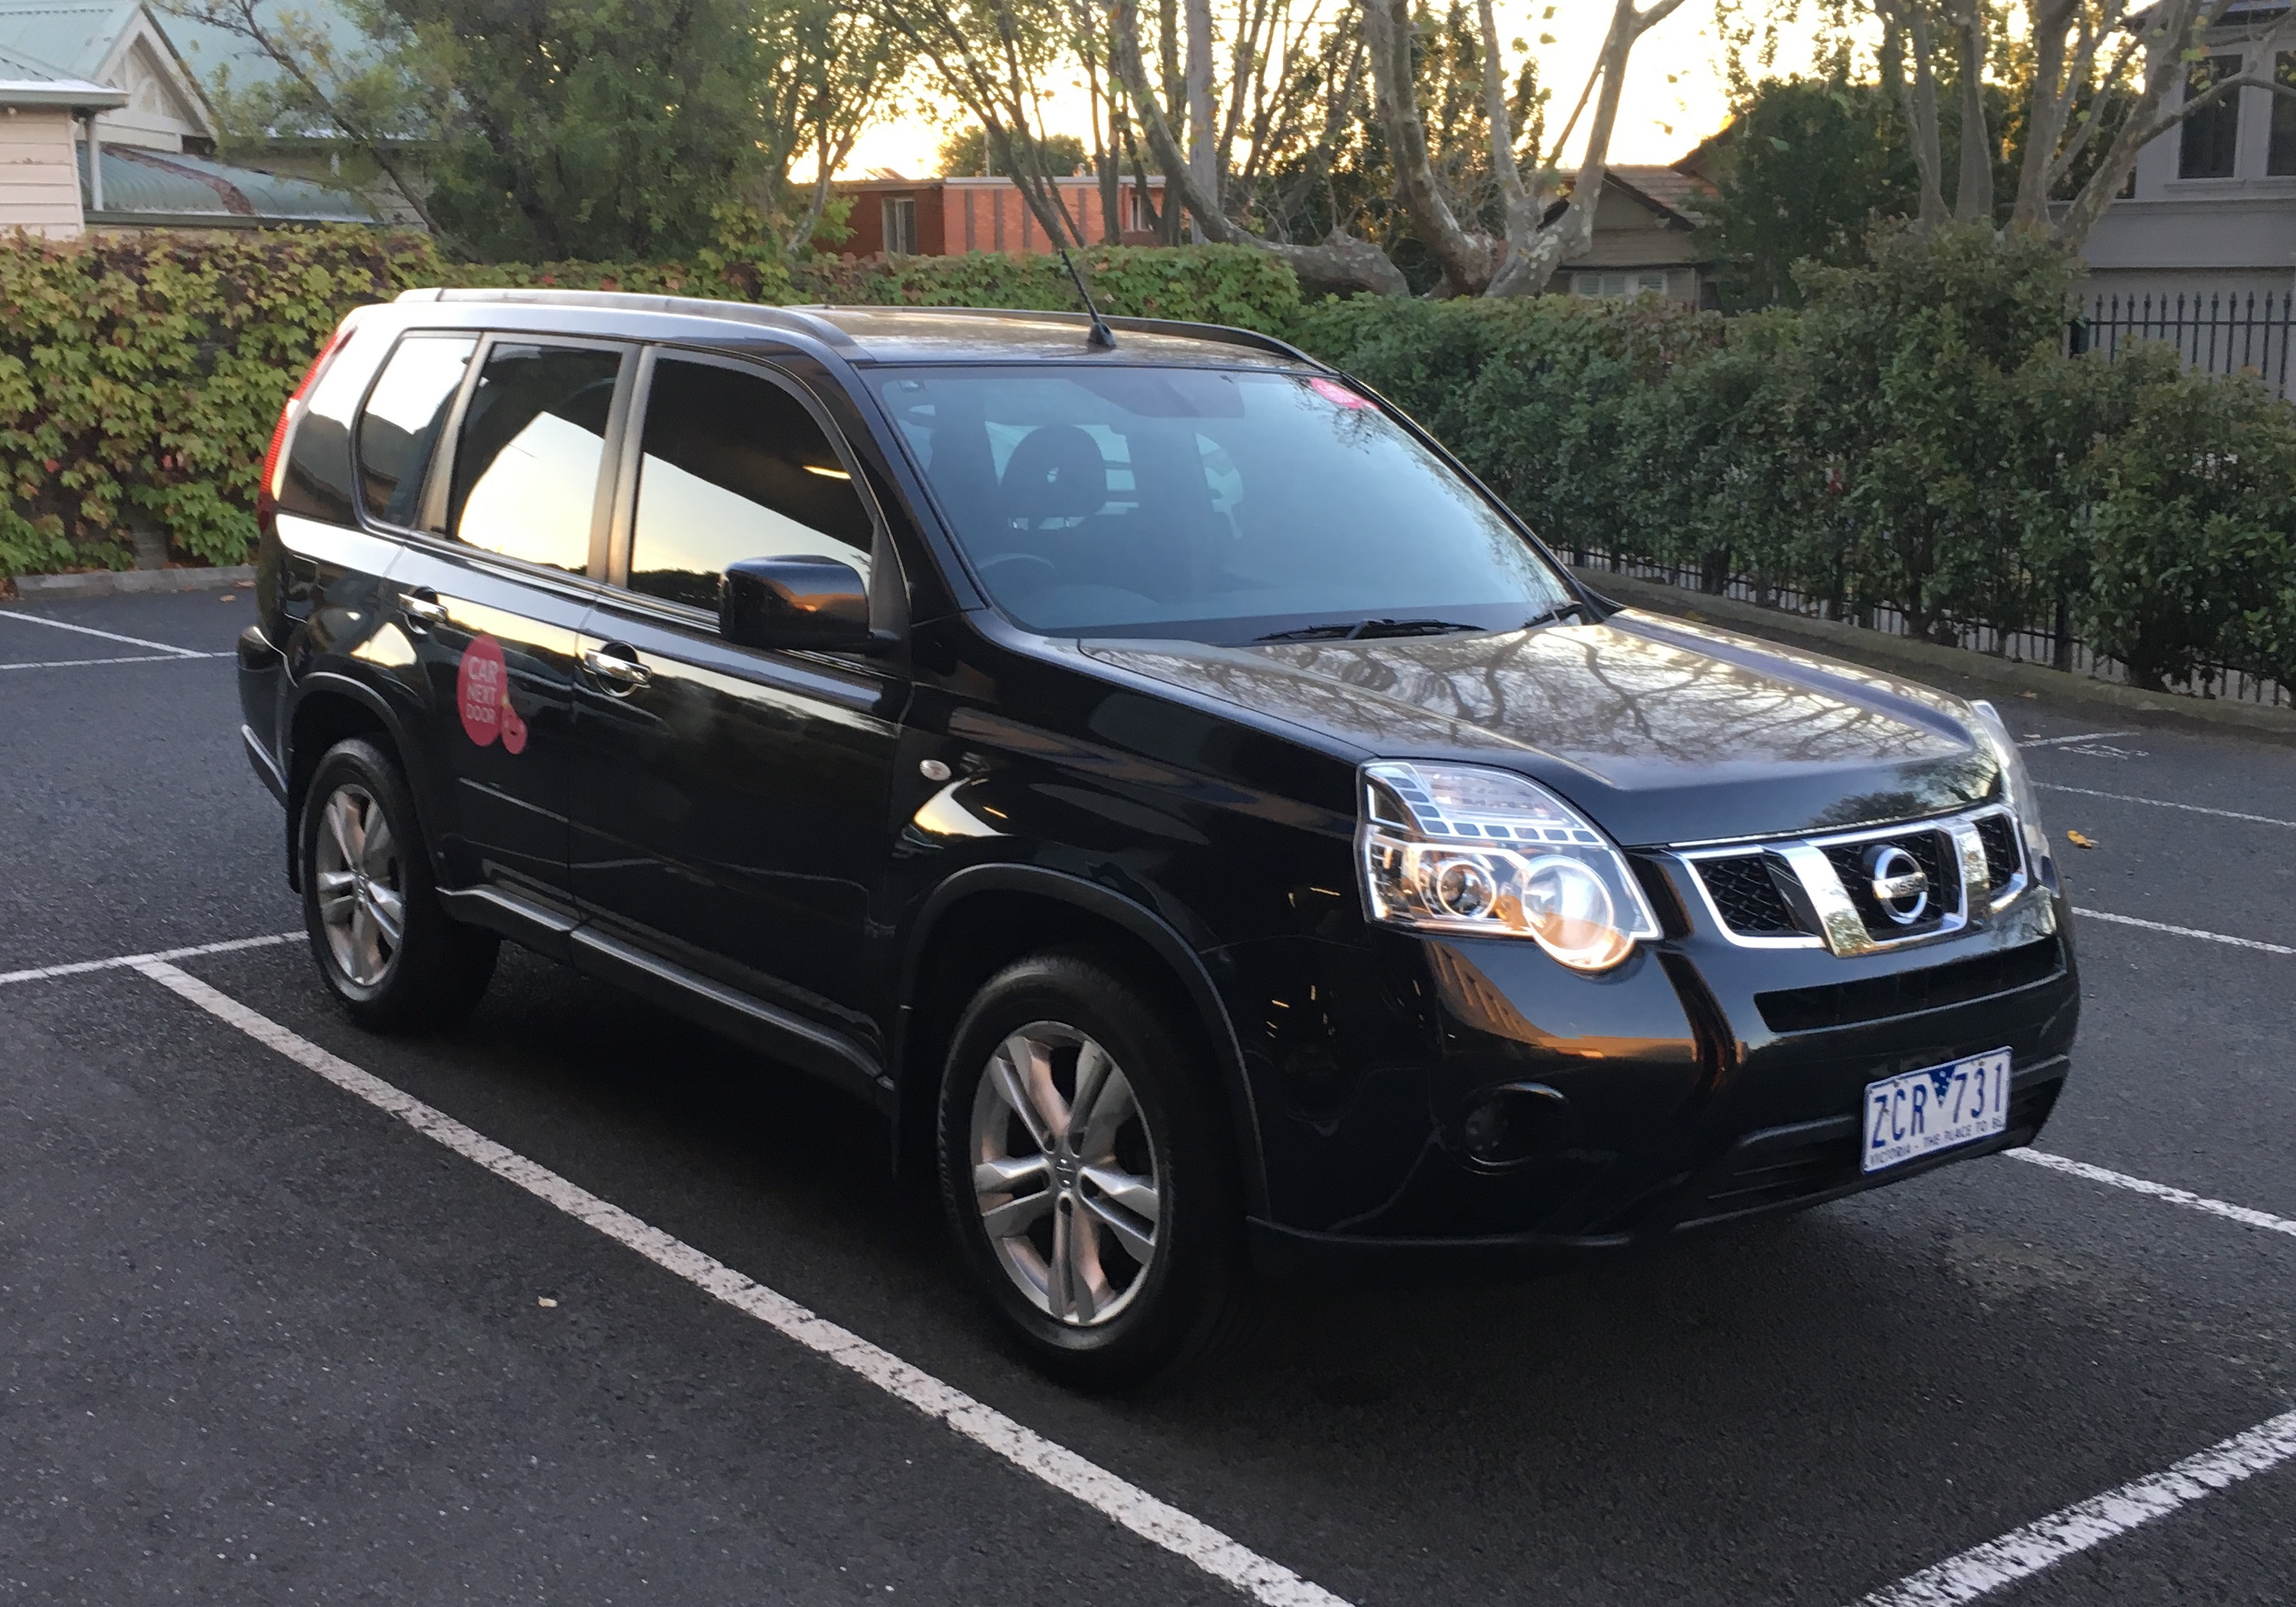 Picture of Bonnie's 2012 Nissan X-trail